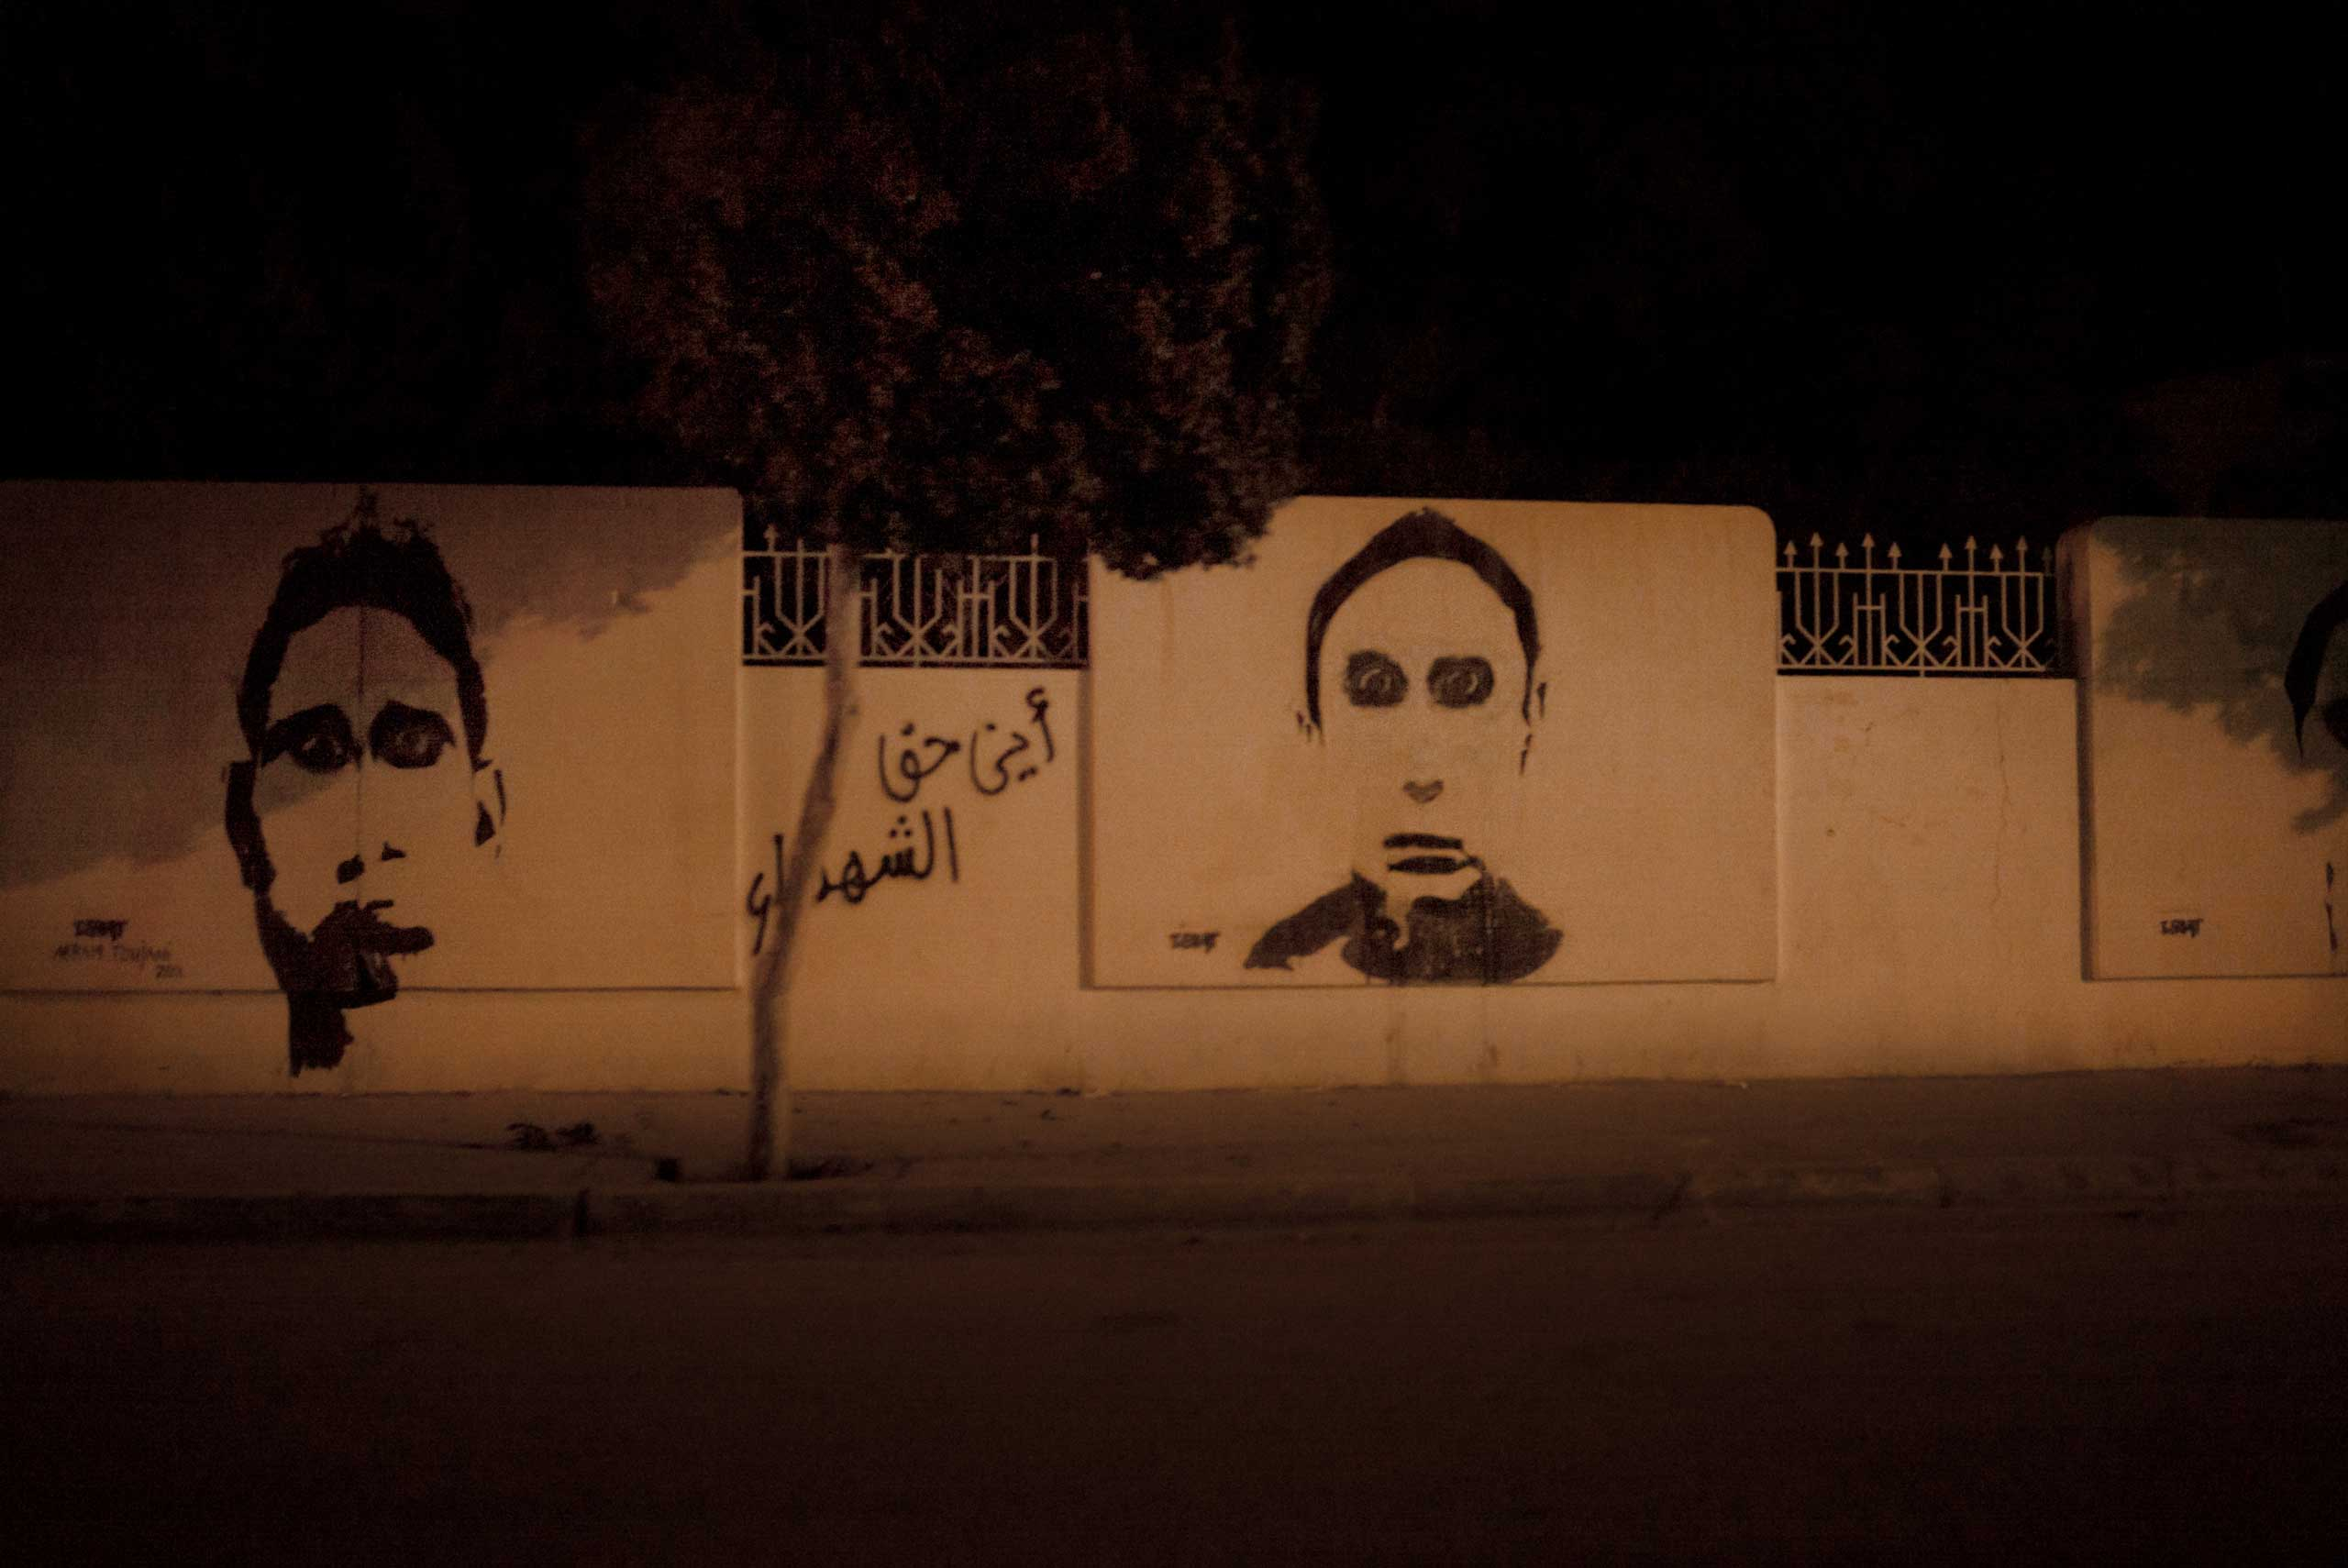 The graffiti above memorializes fighters who died helping to overthrow the ruling Tunisian government in 2011. Correction: The original version of this caption incorrectly described the graffiti.